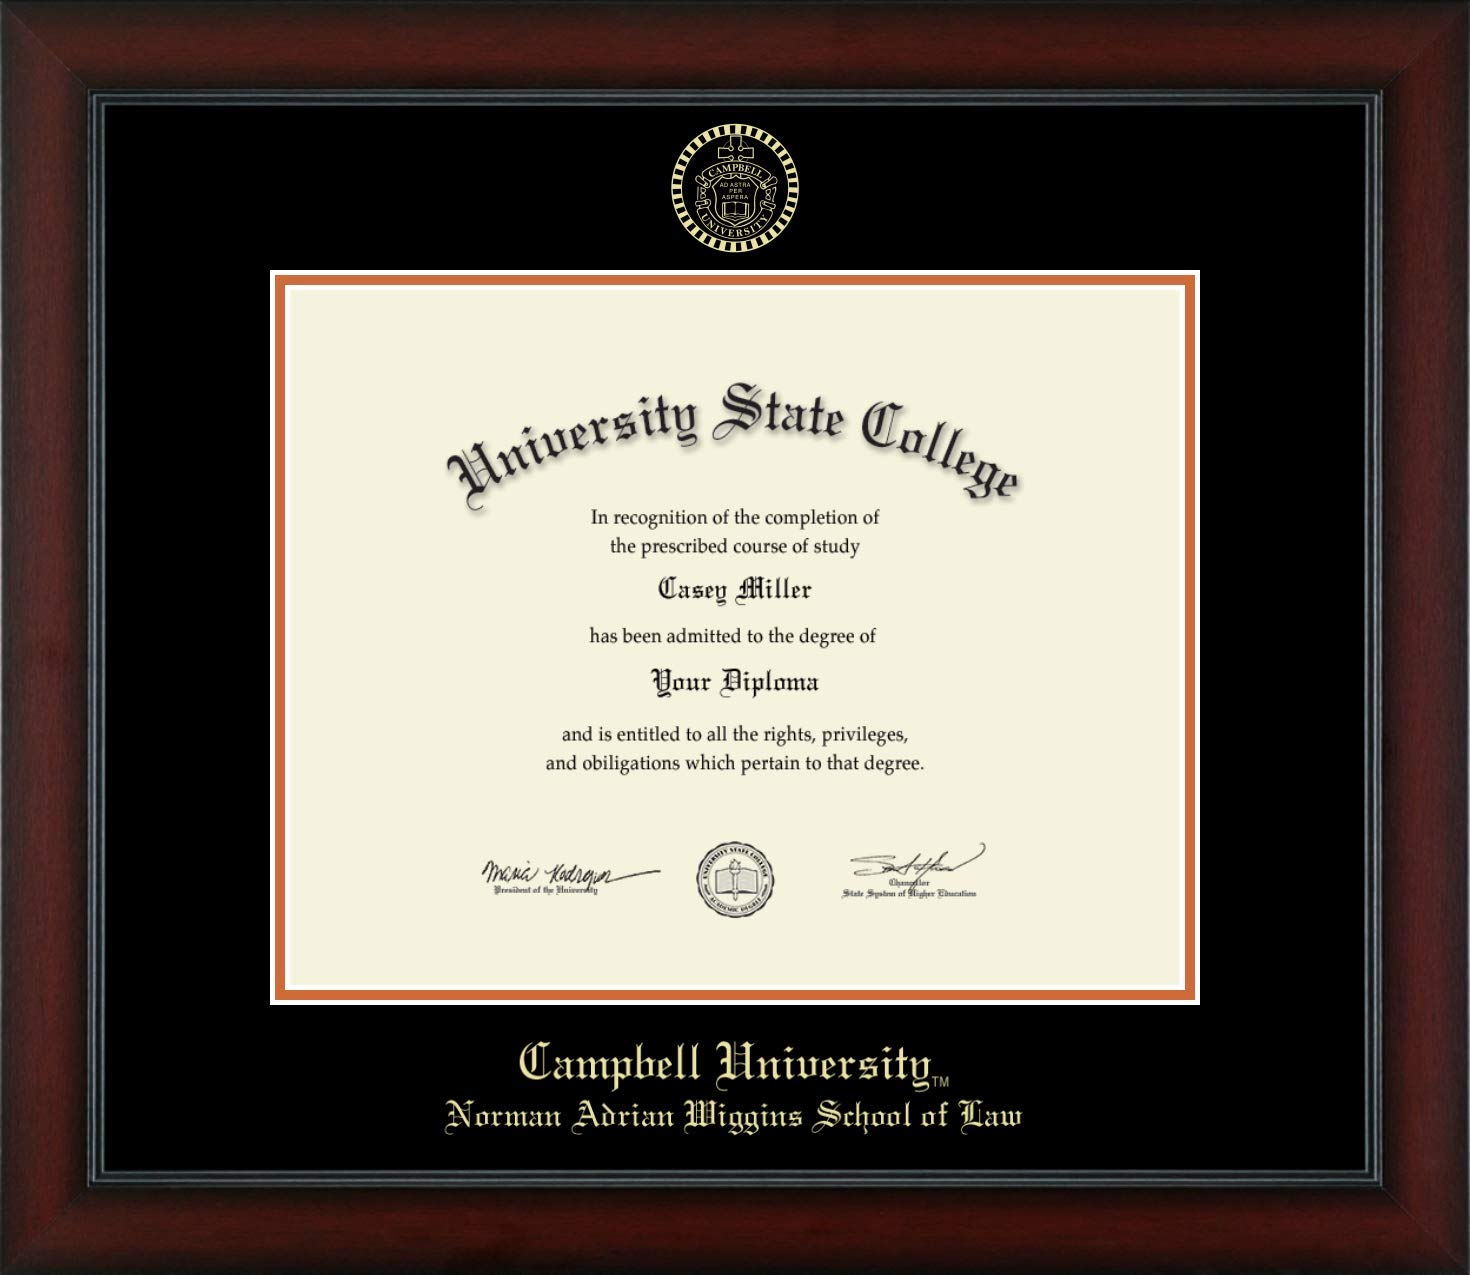 Campbell University Norman Adrian Wiggins School of Law - Officially Licensed - Gold Embossed Diploma Frame - Diploma Size 14'' x 11''